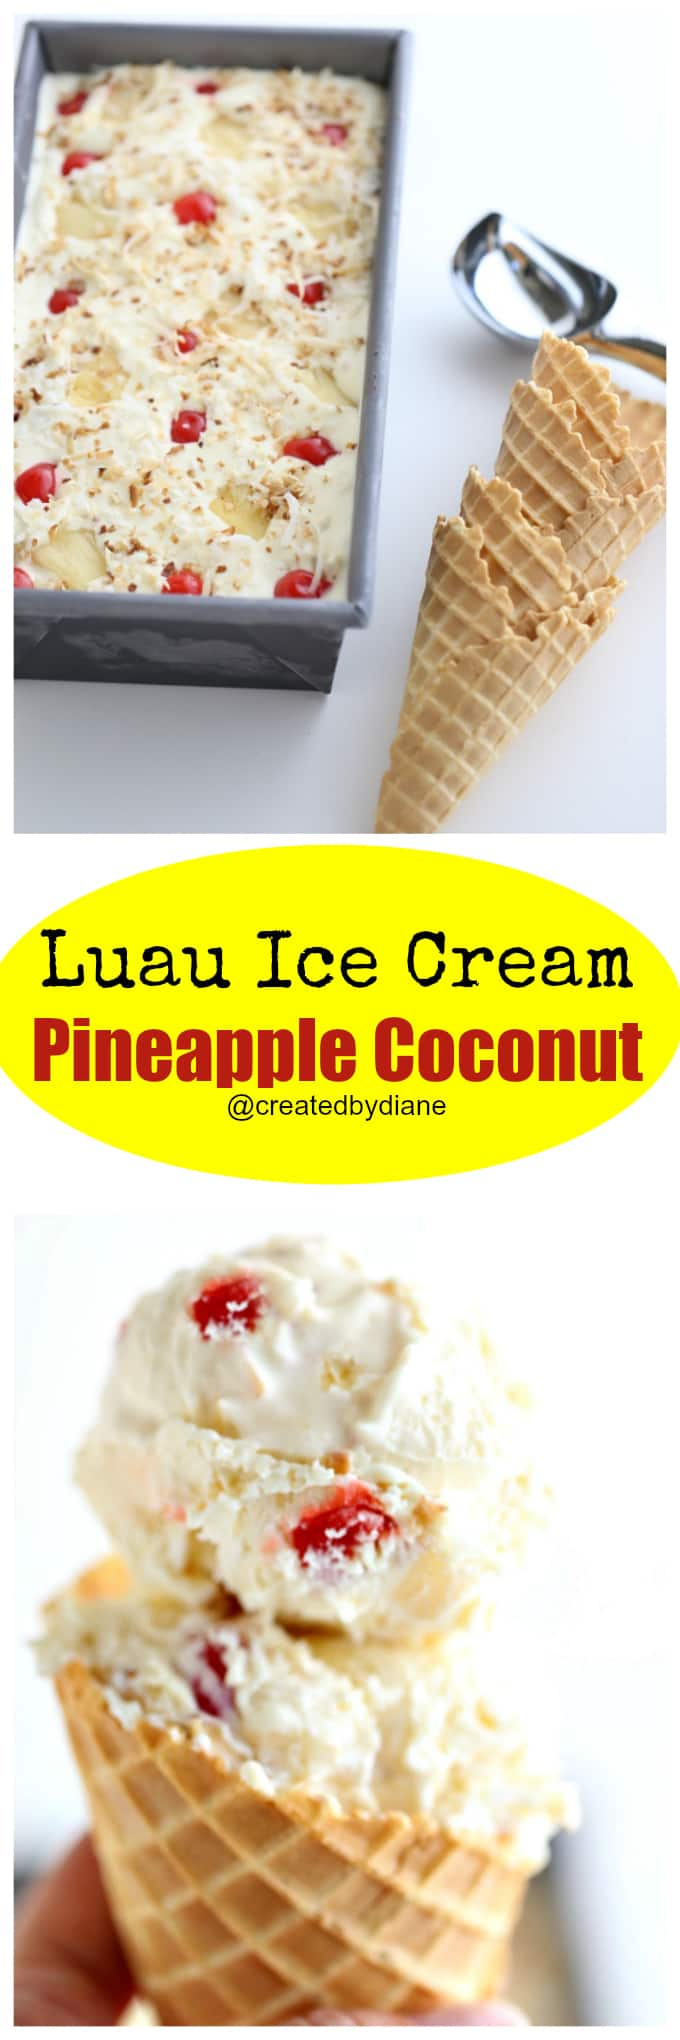 luau ice cream no churn pineapple and coconut from @createdbydiane